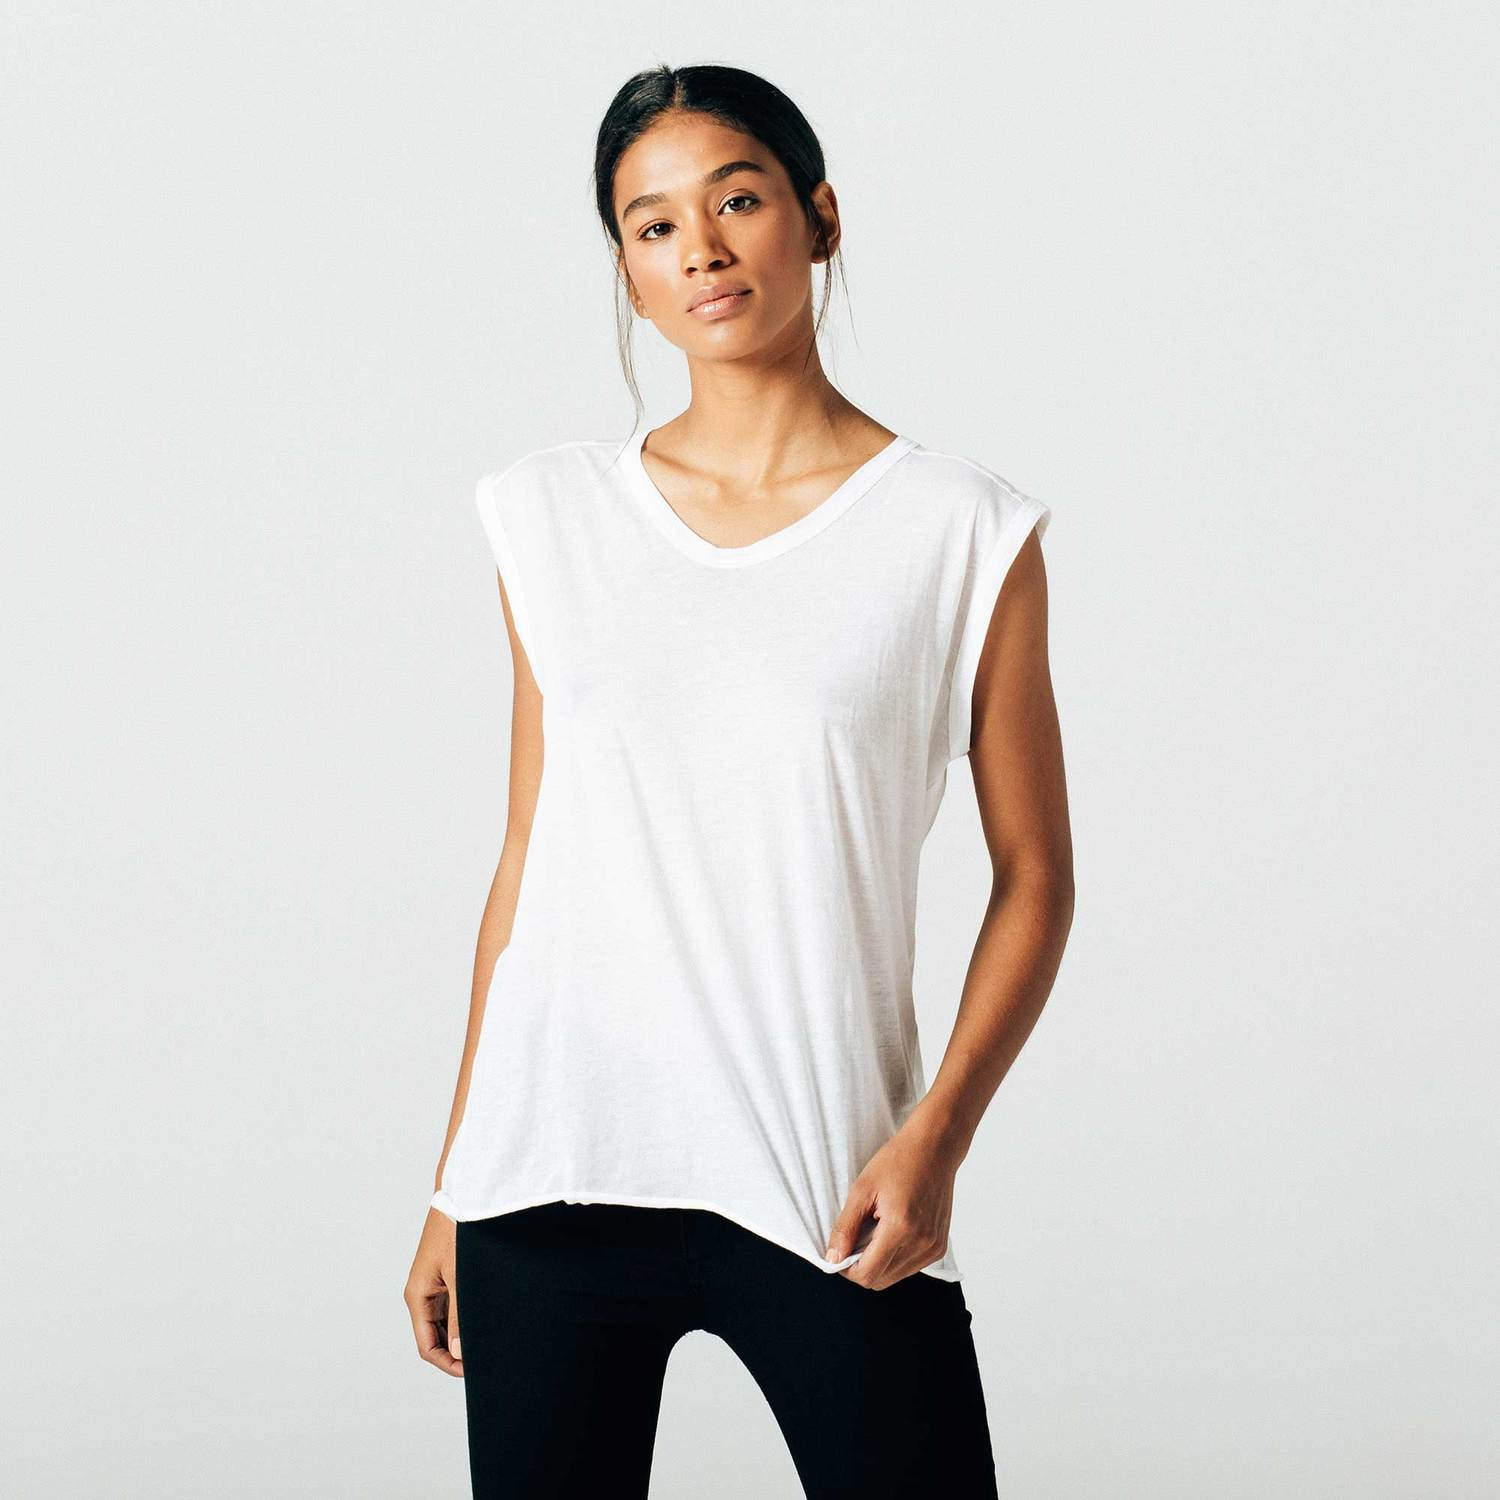 Shop now for great workout tank tops, graphic muscle tees, and just generally cool ladies graphic tees from your favorite brands like O'Neill, Others Follow, Volcom, and more. You'll be sure to find a t-shirt you'll love to wear and love to show off.